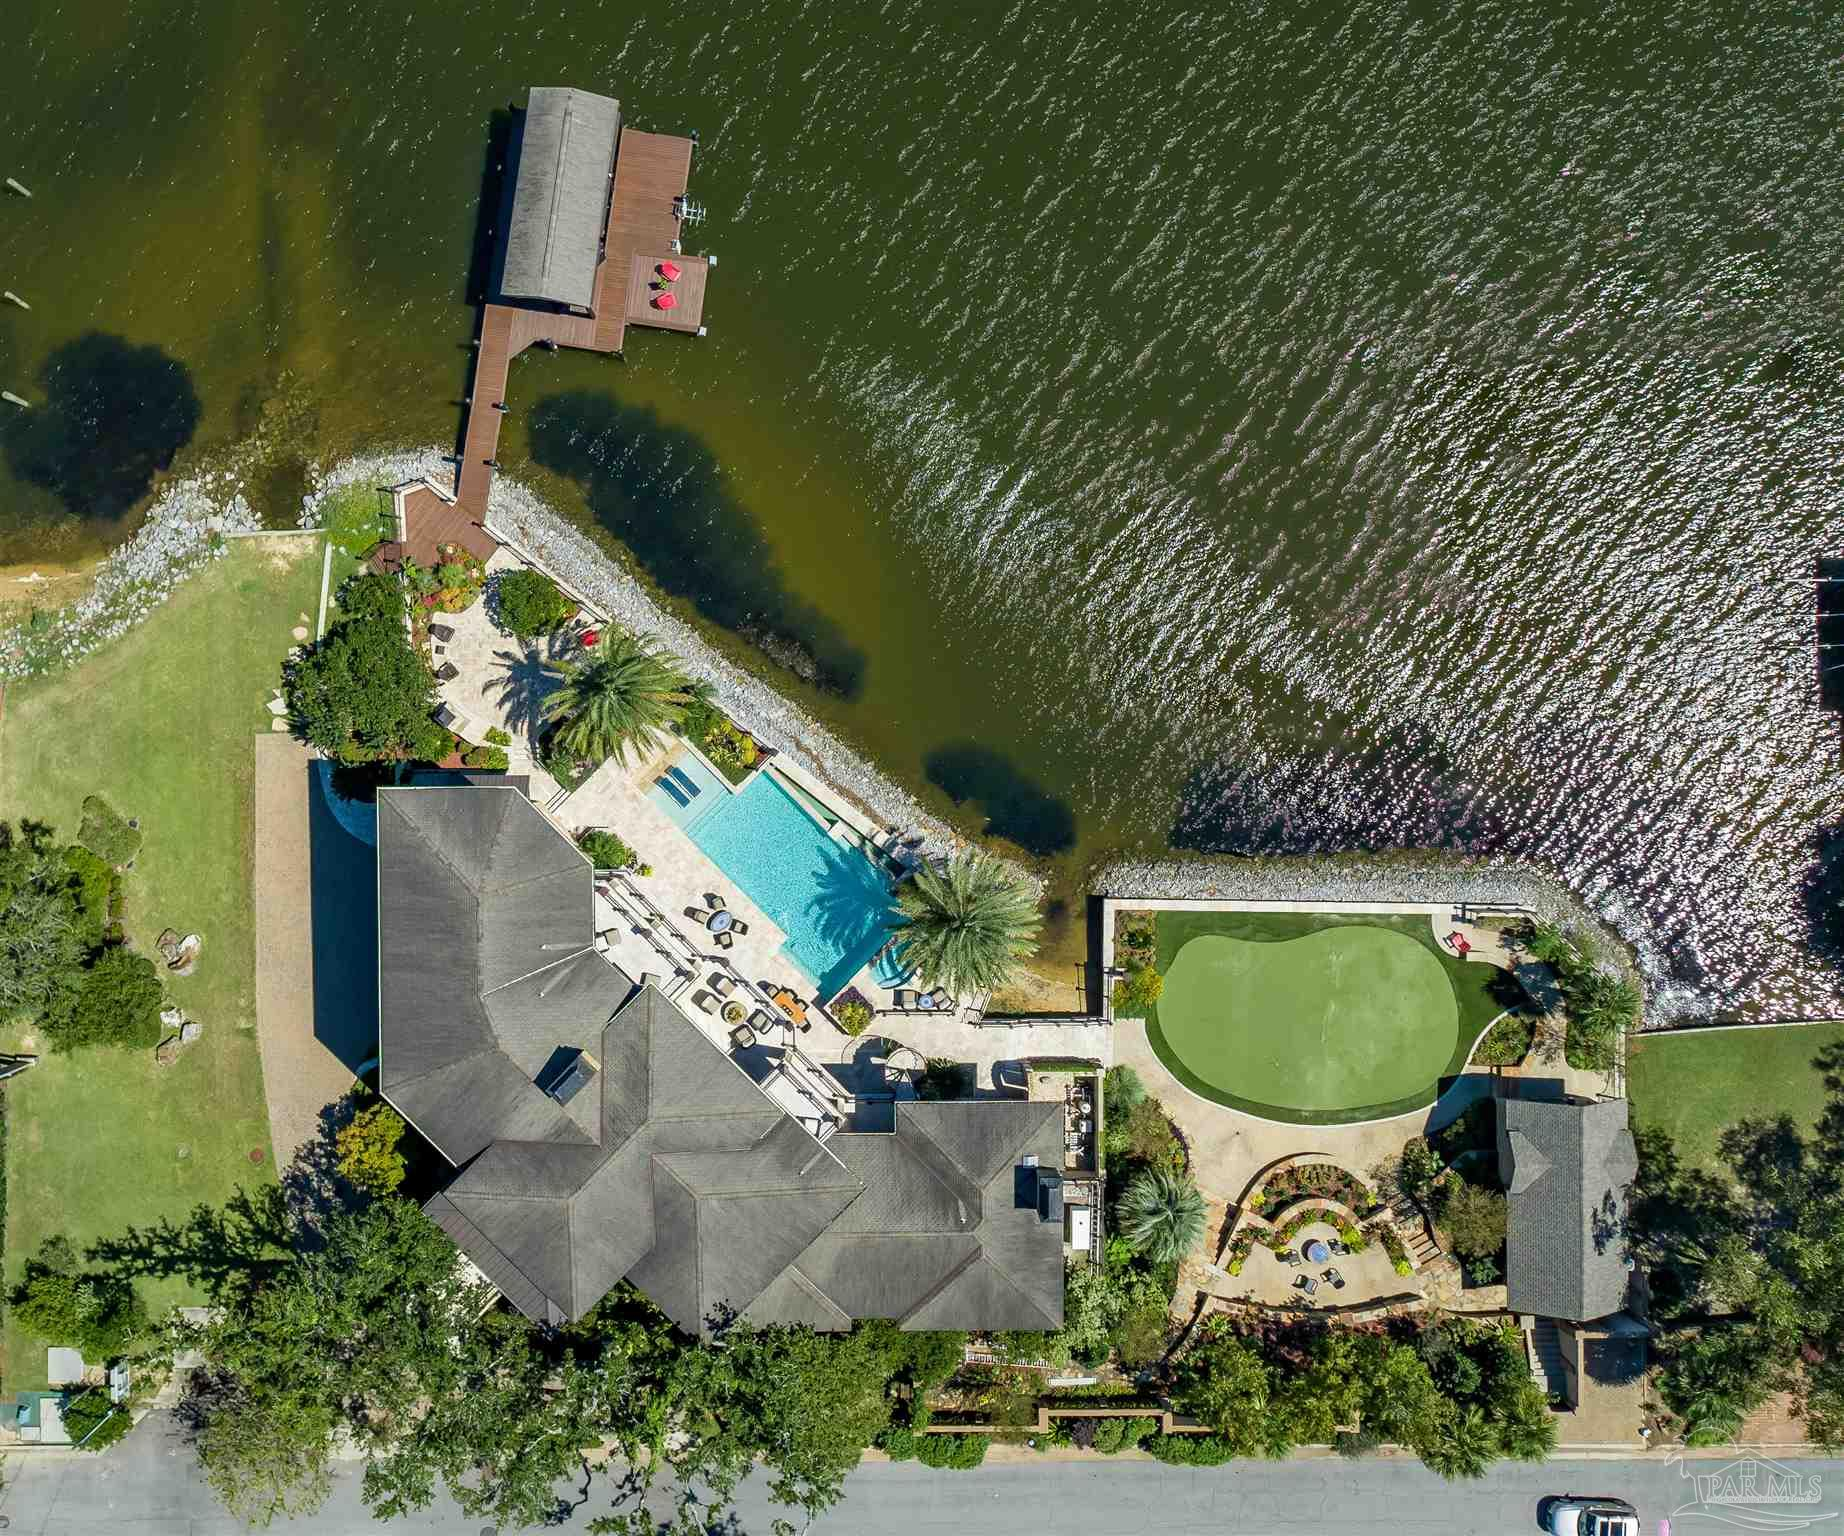 EXQUISITE LIVING at its finest in this stunning EAST HILL home with 230 feet of WATERFRONT on BAYOU TEXAR. Uniquely positioned on the Bayou to afford Panoramic Vistas from every vantage point, this elegant home was thoughtfully and meticulously designed to maximize water views. A superior level of craftsmanship is evident throughout this home which includes detailed stonework, travertine and white oak flooring, custom cabinetry, inlaid tiles can be found in the kitchen and baths. Truly a well-planned, spacious home, featuring three floors. Uppermost living space is comprised of three bedrooms with 3 en suite baths, office and laundry room. Then moving to the main floor with a master suite, laundry room, guest powder room and second bedroom/den with accompanying en suite bath. The main level gourmet kitchen features all high-end appliances such as Sub-Zero refrigerator/drawers, Wolf dual-fuel range/microwave/warming drawer, 2 dishwashers and Miele built-in coffee maker. The lower level boasts a second master bedroom/Mother-in-Law suite and additional fully appointed kitchen. A beautifully designed elevator services all 3 levels of the home. Other amenities on the lower level include family room, media/exercise room, 2 tv's, pool table as well as a lavish wine cellar. All levels have direct access to the outdoors for seamless transition to a beautifully designed multi-level outdoor waterfront space. The patio areas provide ample space for large gatherings and are perfect for entertaining with a high-end outdoor kitchen or relaxing with friends and family around the infinity edge pool w/ hot tub, fireplace or fire pit. This exceptional property includes additional recreational opportunities, private boat dock, four-hole putting green/synthetic grass, large storage house perfect for storing pool, fishing and lawn equipment. The 3 car garage has a convenient 220V charging outlet. This home incorporates all the latest technology to maintain efficiency and comfort.